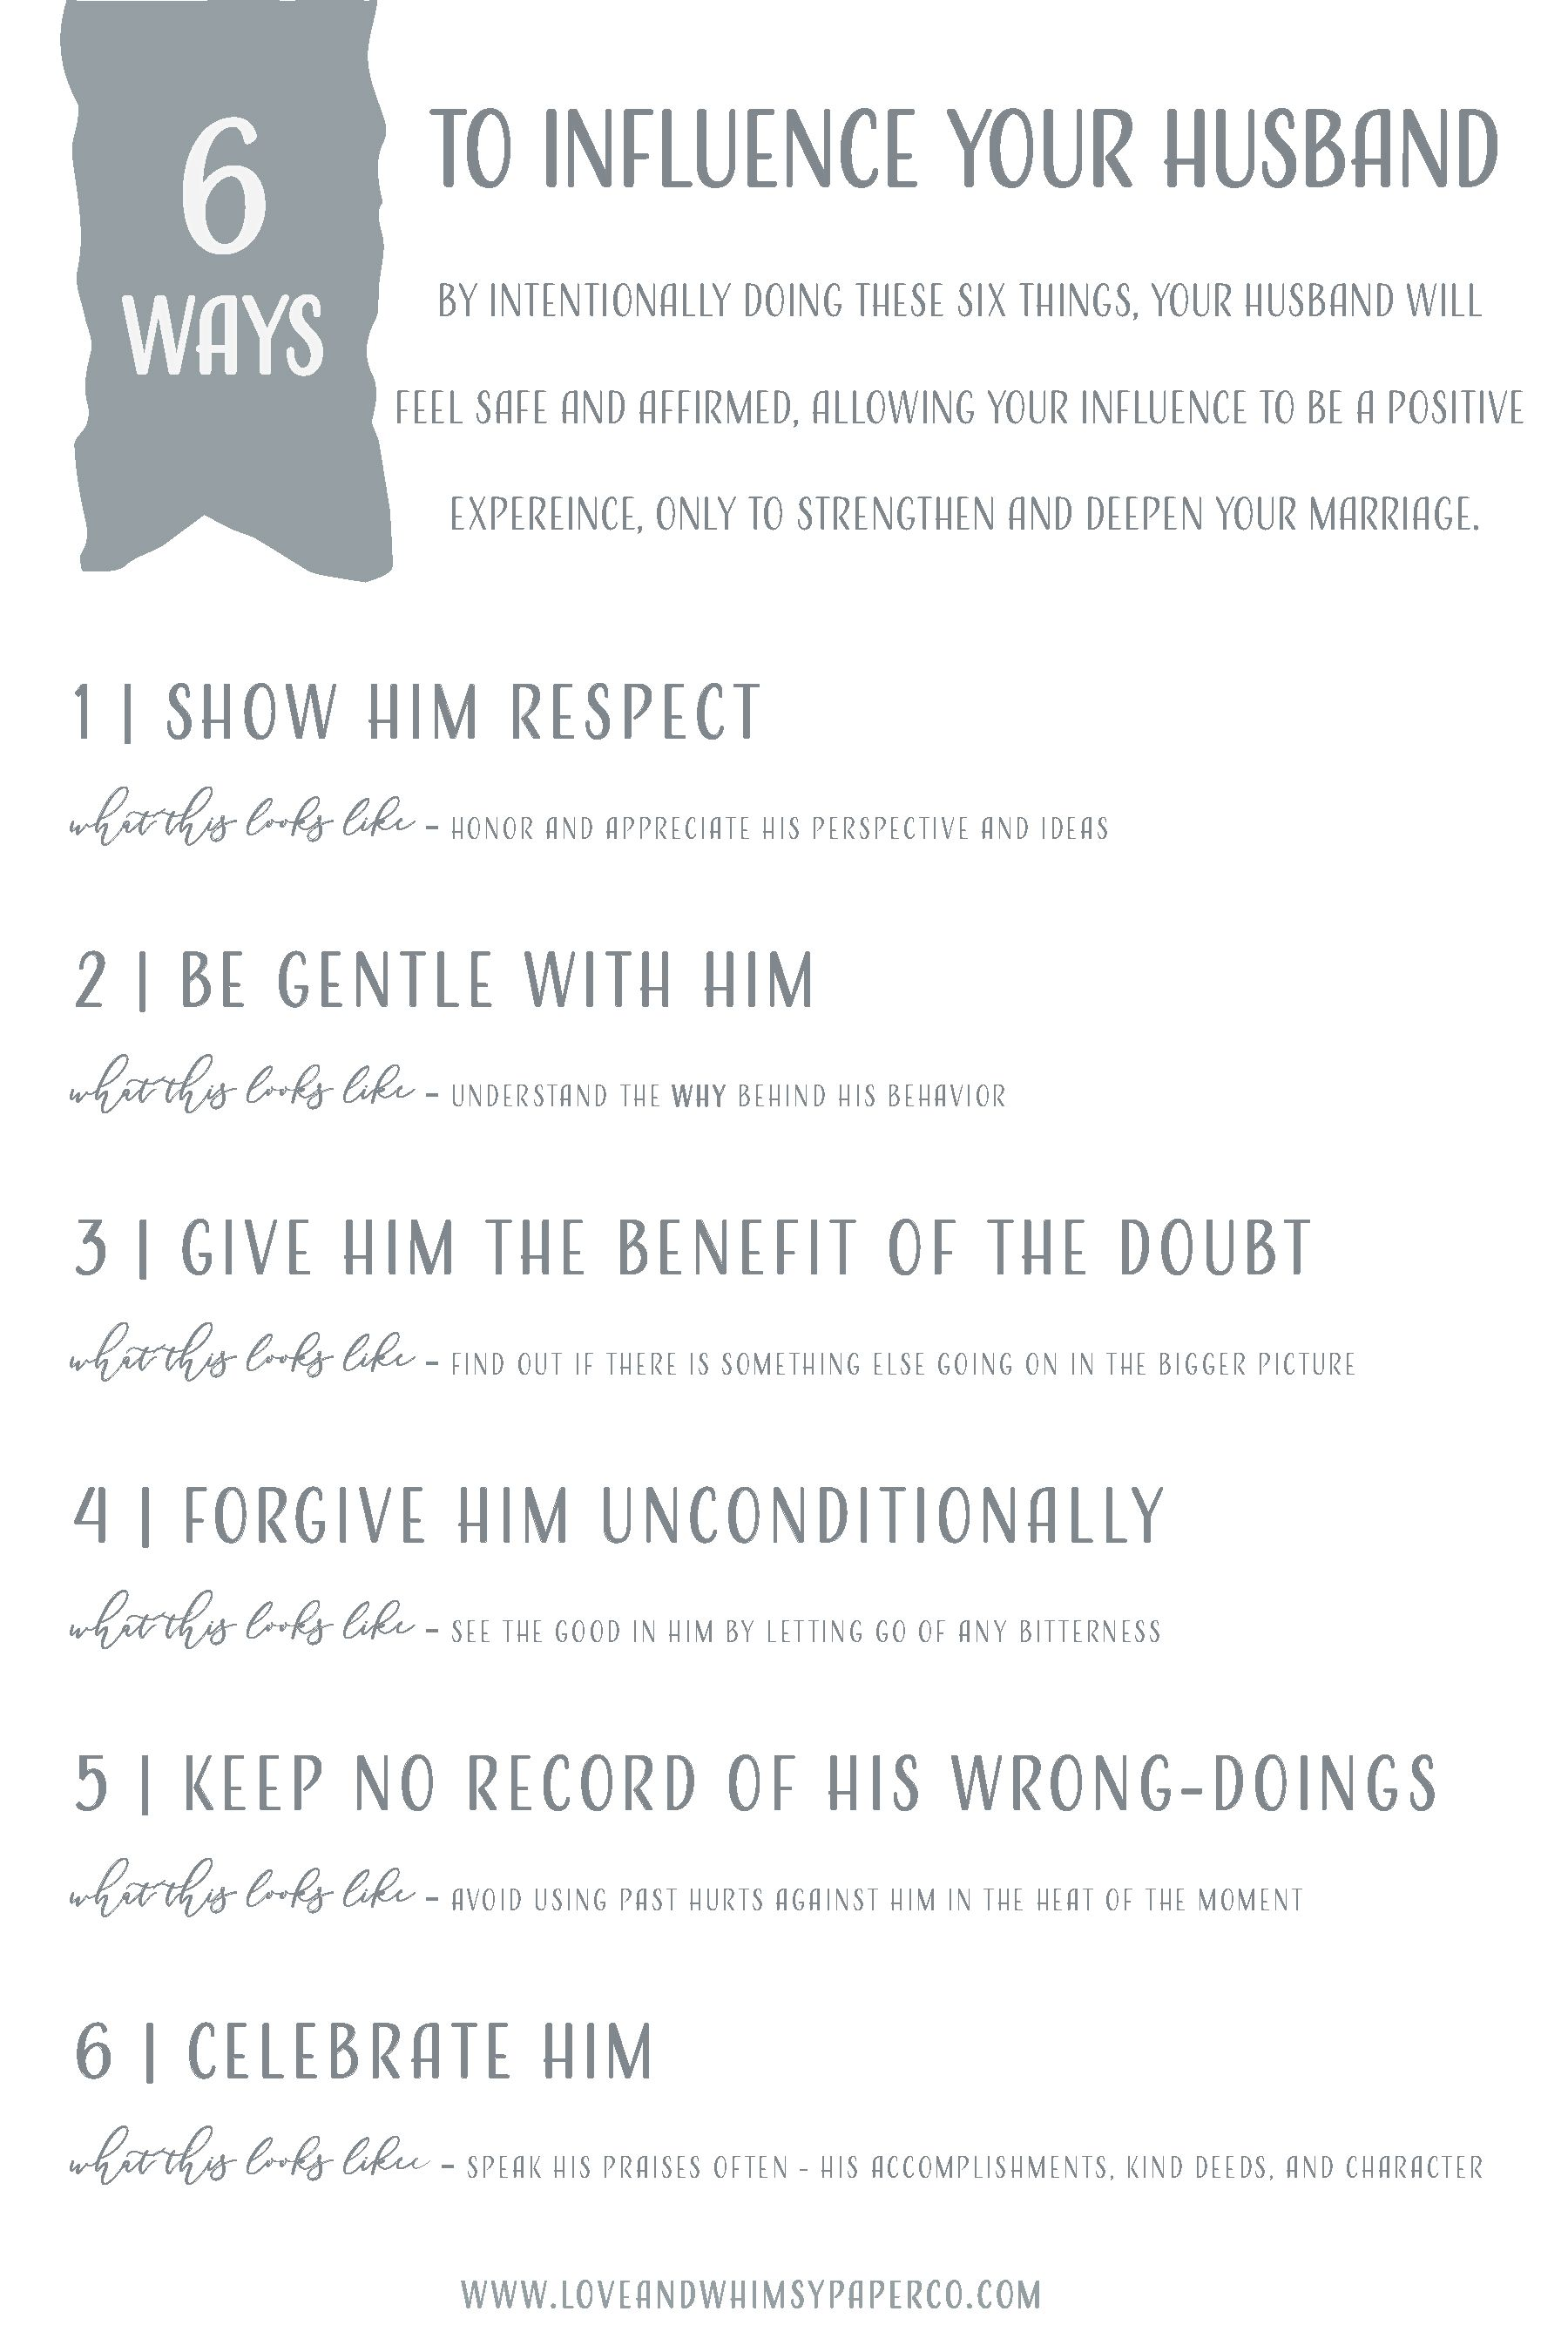 6 Ways To Influence Your Husband from Love and Whimsy Paper pany